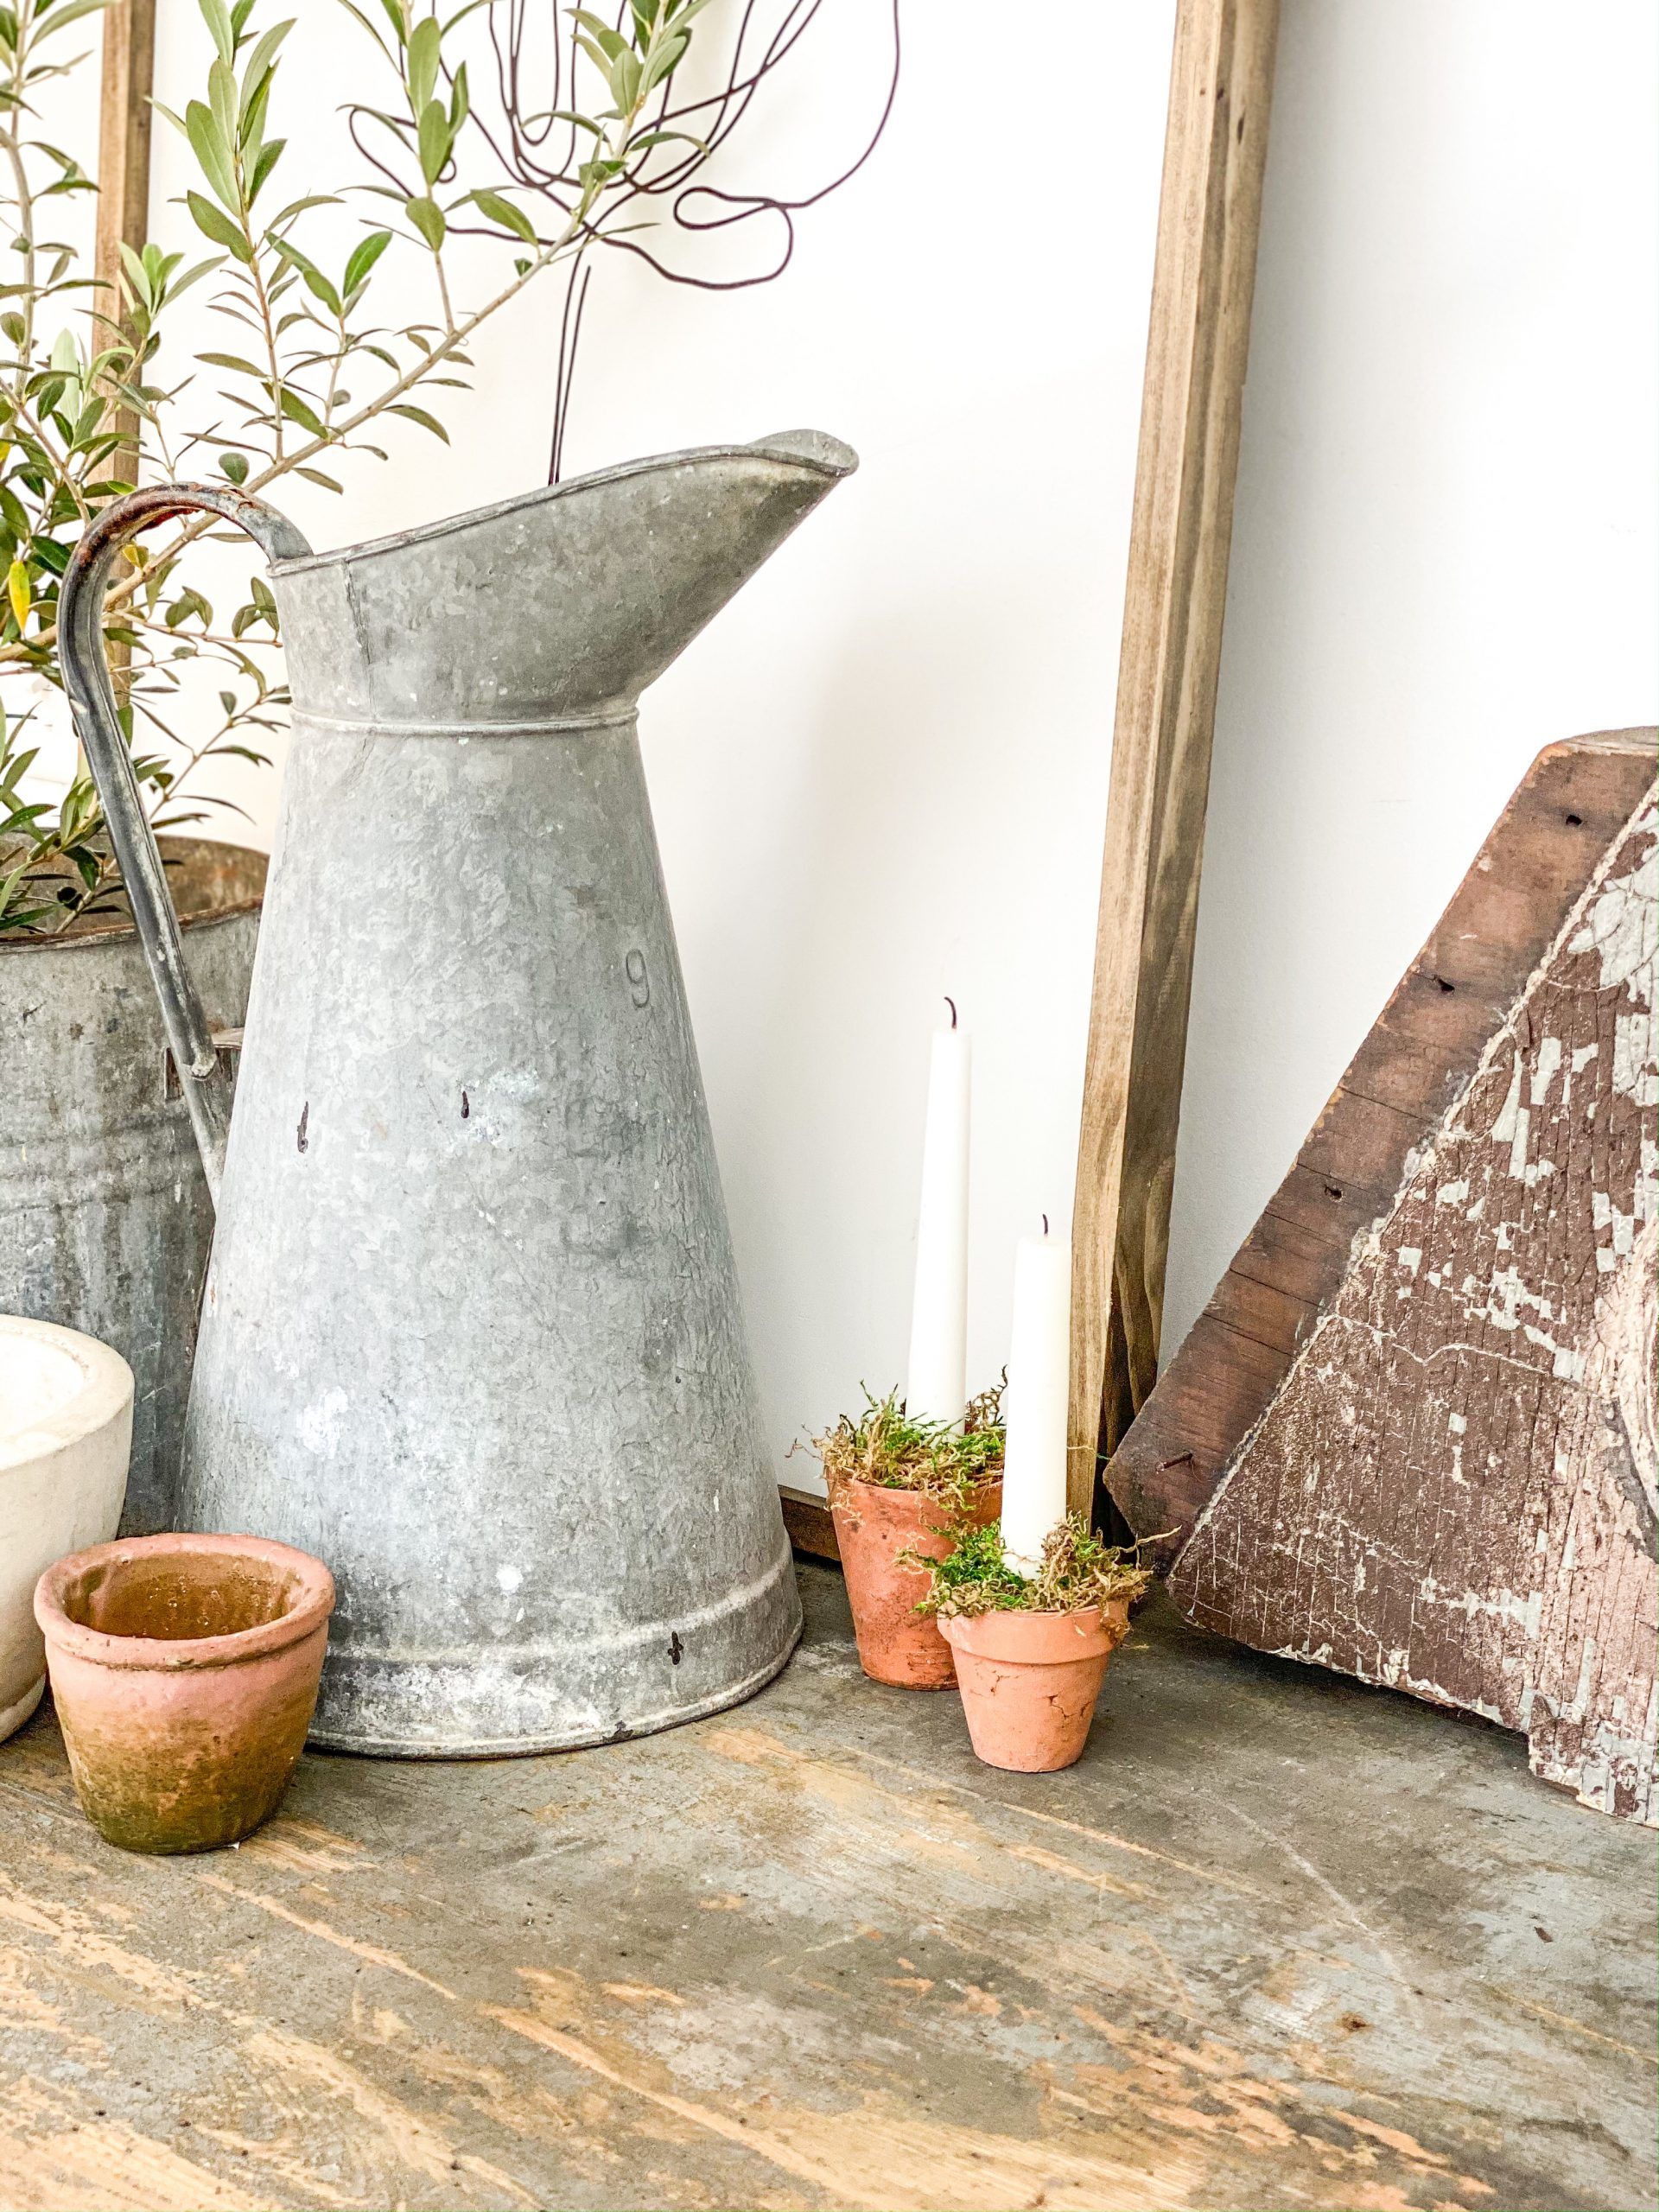 Make Your Own Garden-Inspired Candle Holder